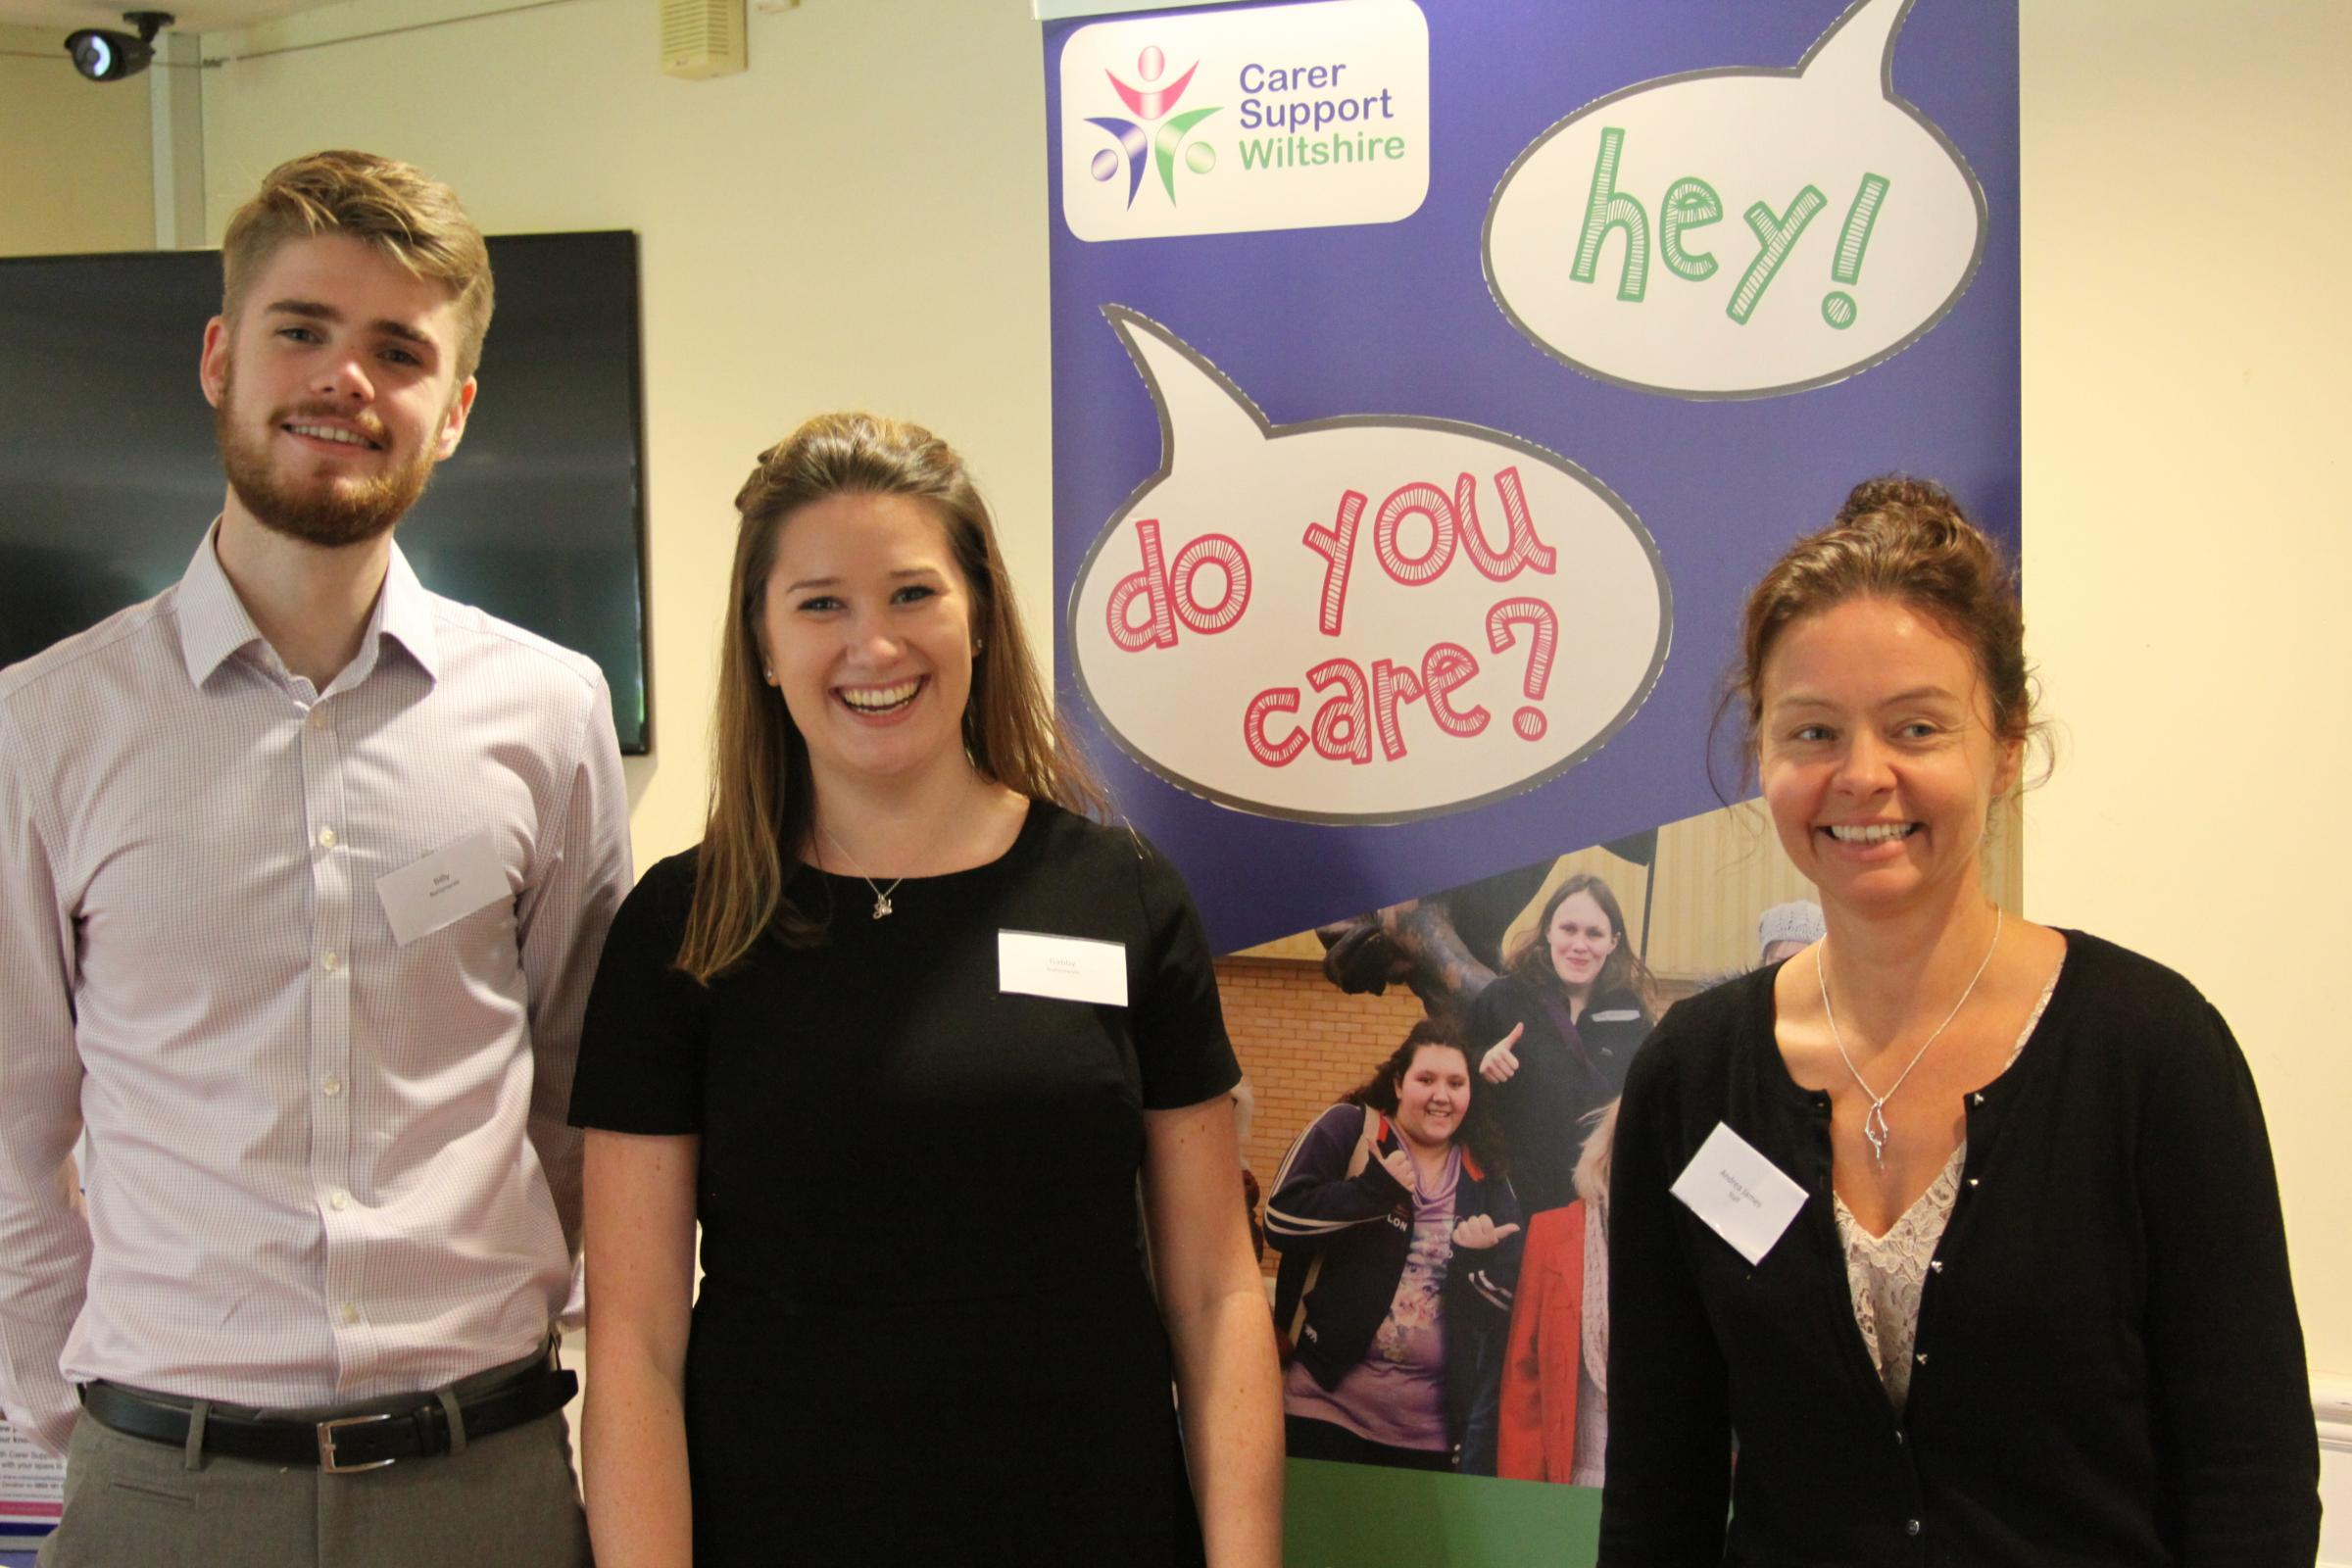 Andrea James, Young Adult Carers Supporter Worker at Carer Support Wiltshire with Gabrielle Hodnett and Billy Wheeler from the Nationwide Graduate team.